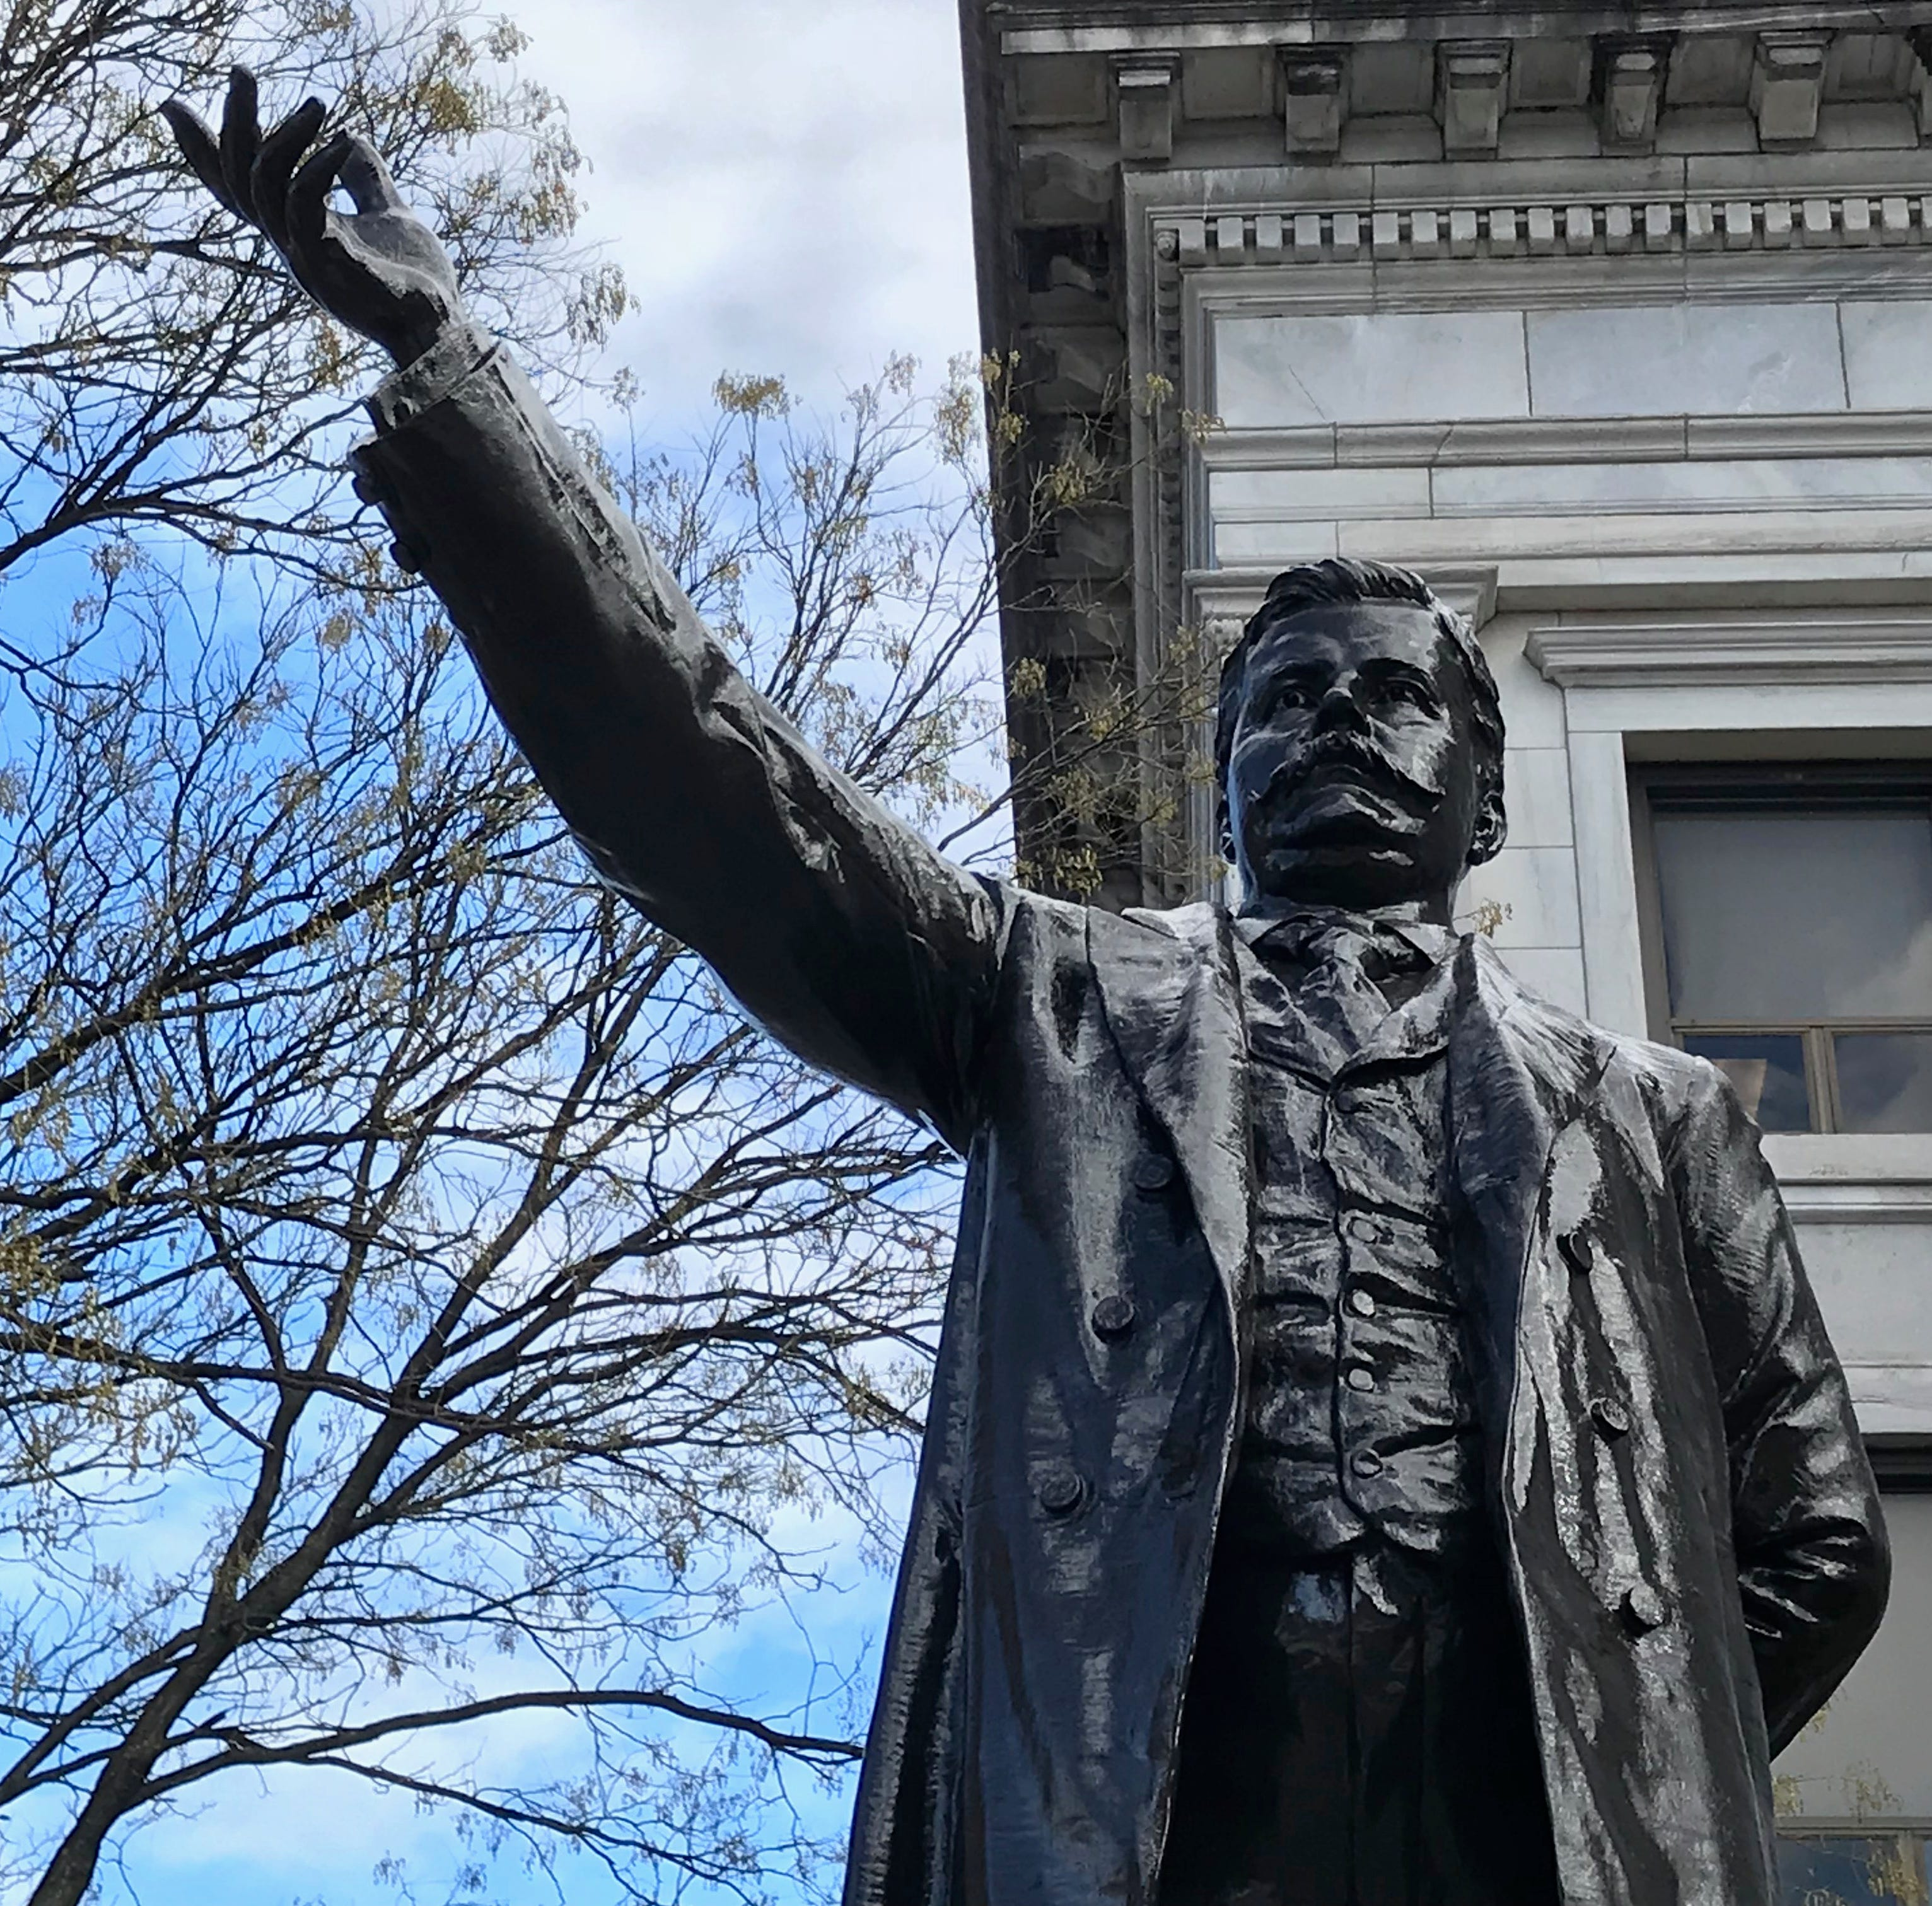 Luster restored on two statues memorializing leaders from Paterson